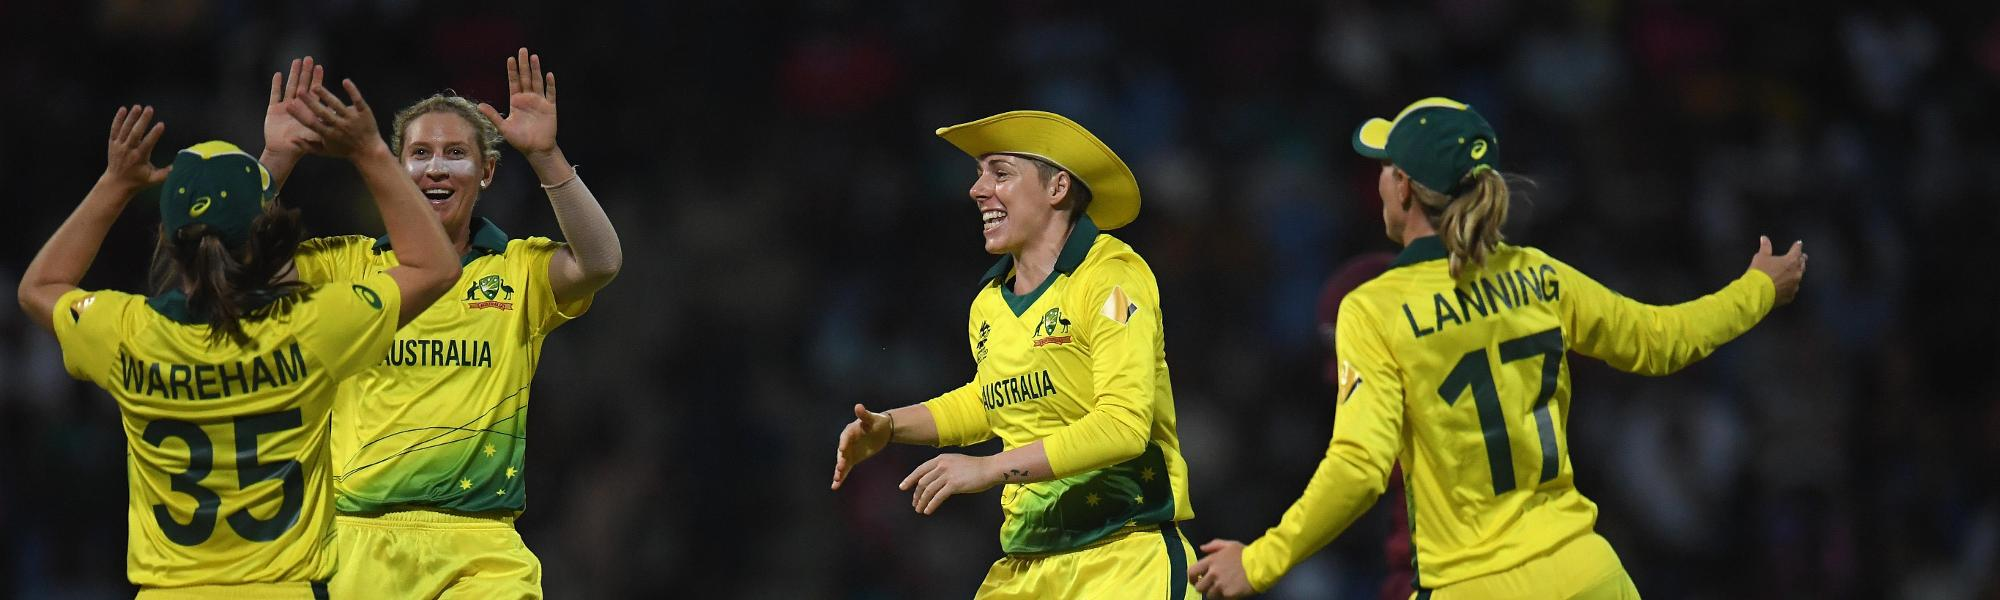 Delissa Kimmince of Australia(2L) celebrates after dismissing Natasha McLean of West Indies during the ICC Women's World T20 2018 Semi-Final match between West Indies and Australia at Sir Viv Richards Cricket Ground on November 22, 2018 in Antigua.